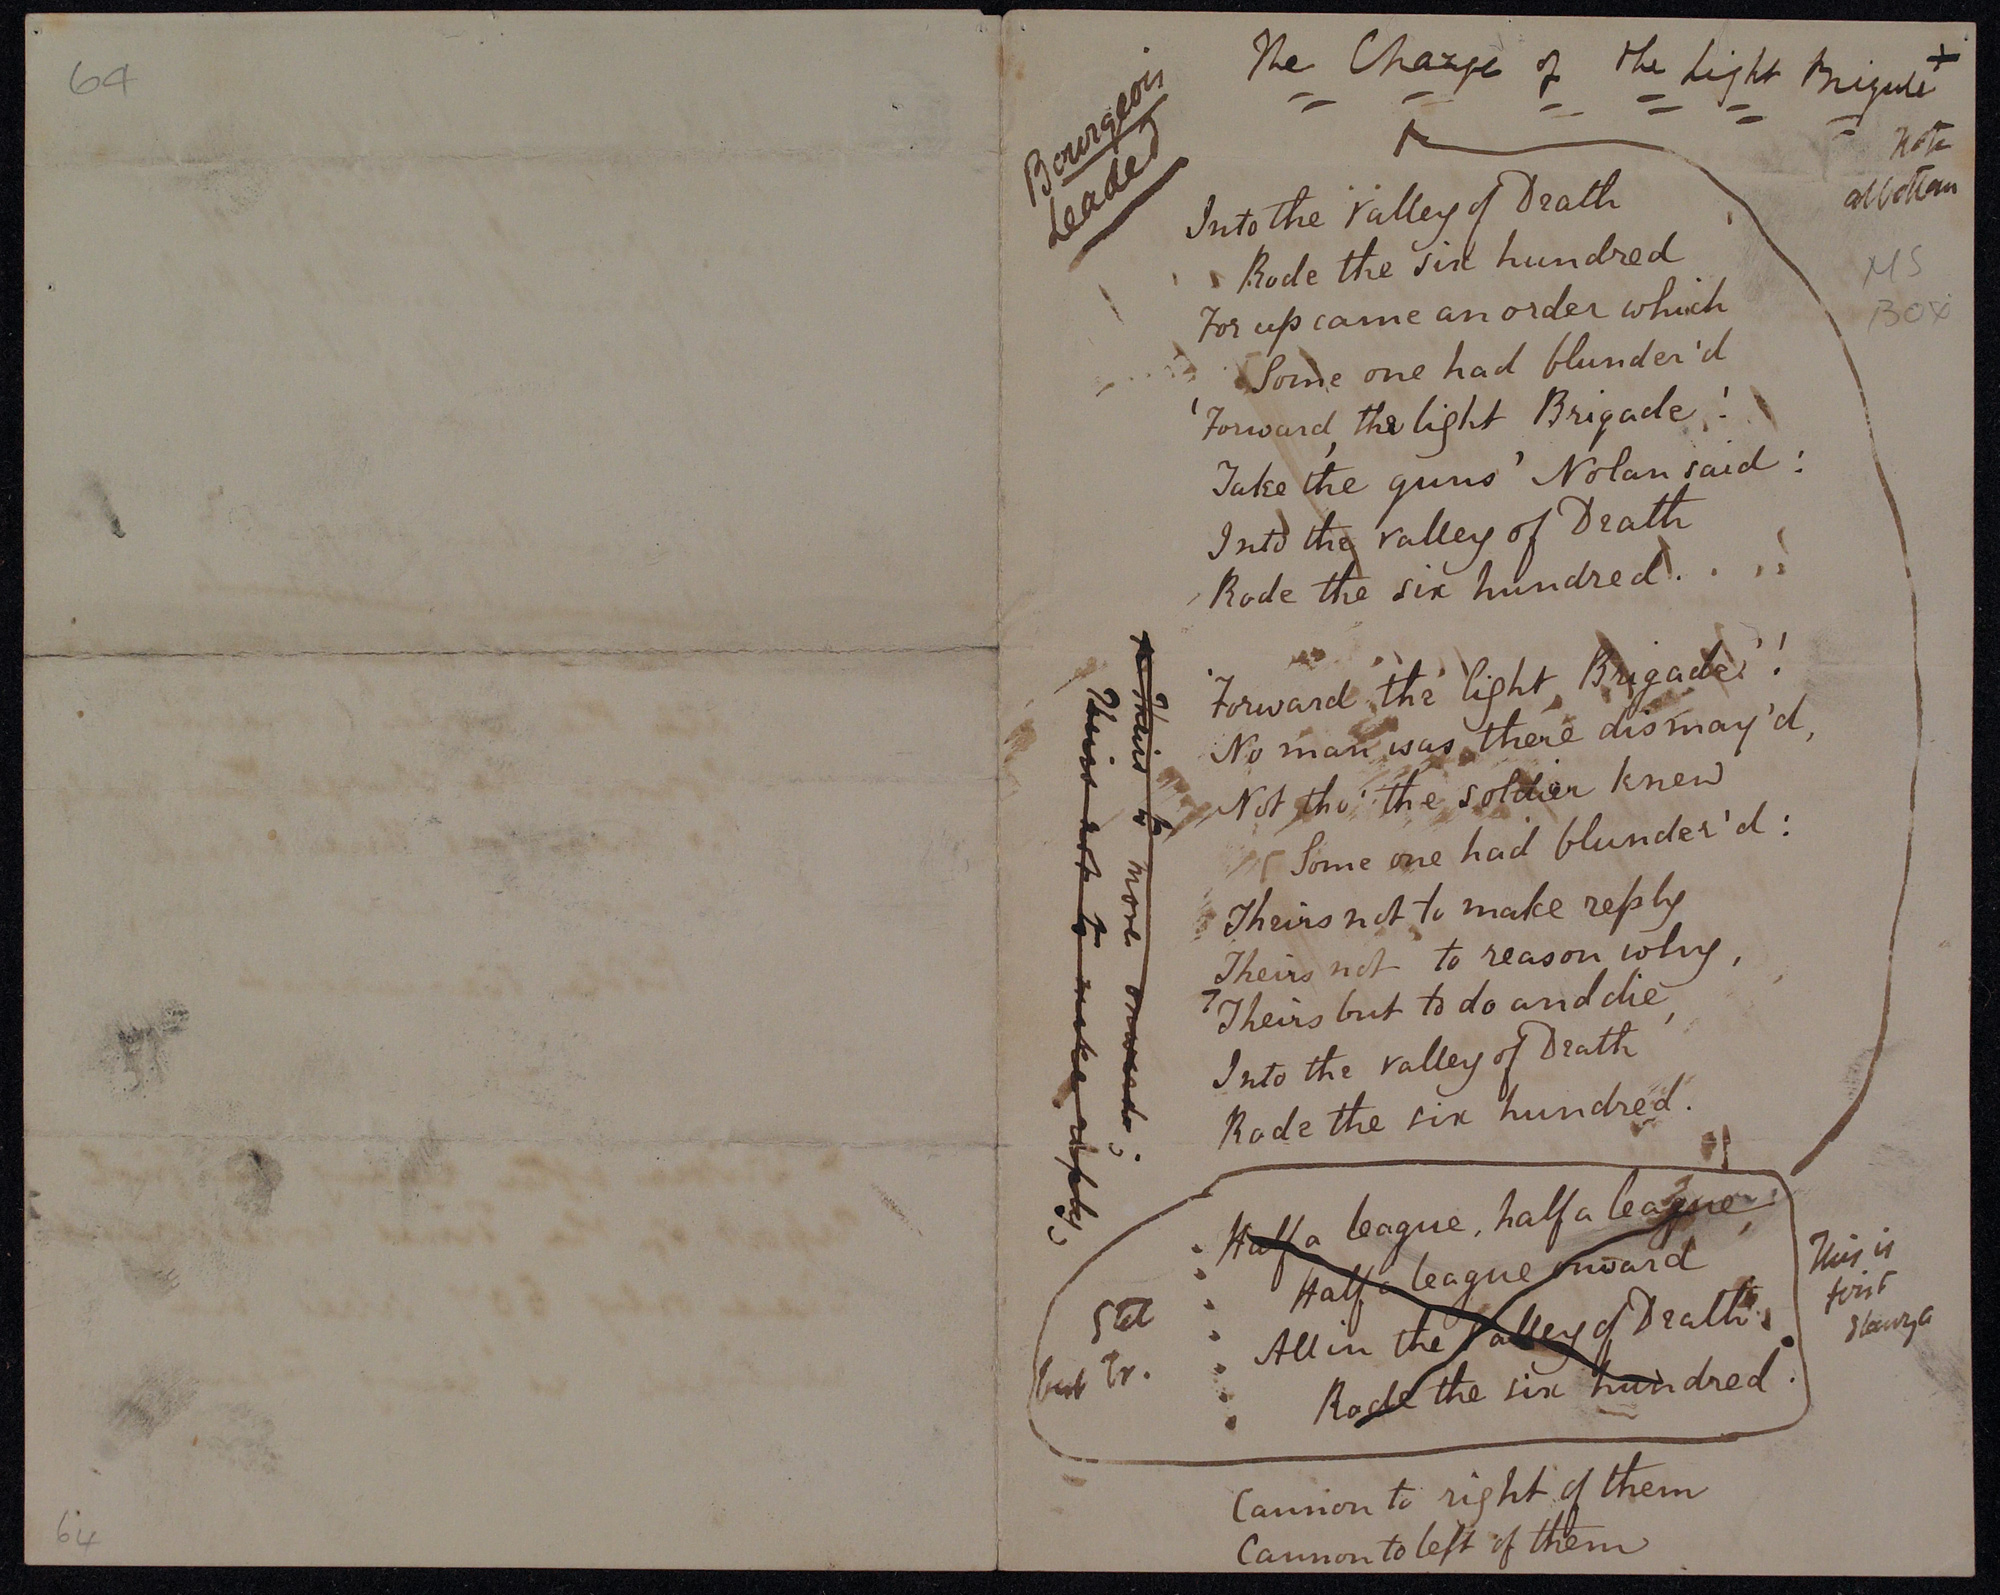 Proof of 'The Charge of the Light Brigade' by Alfred Tennyson